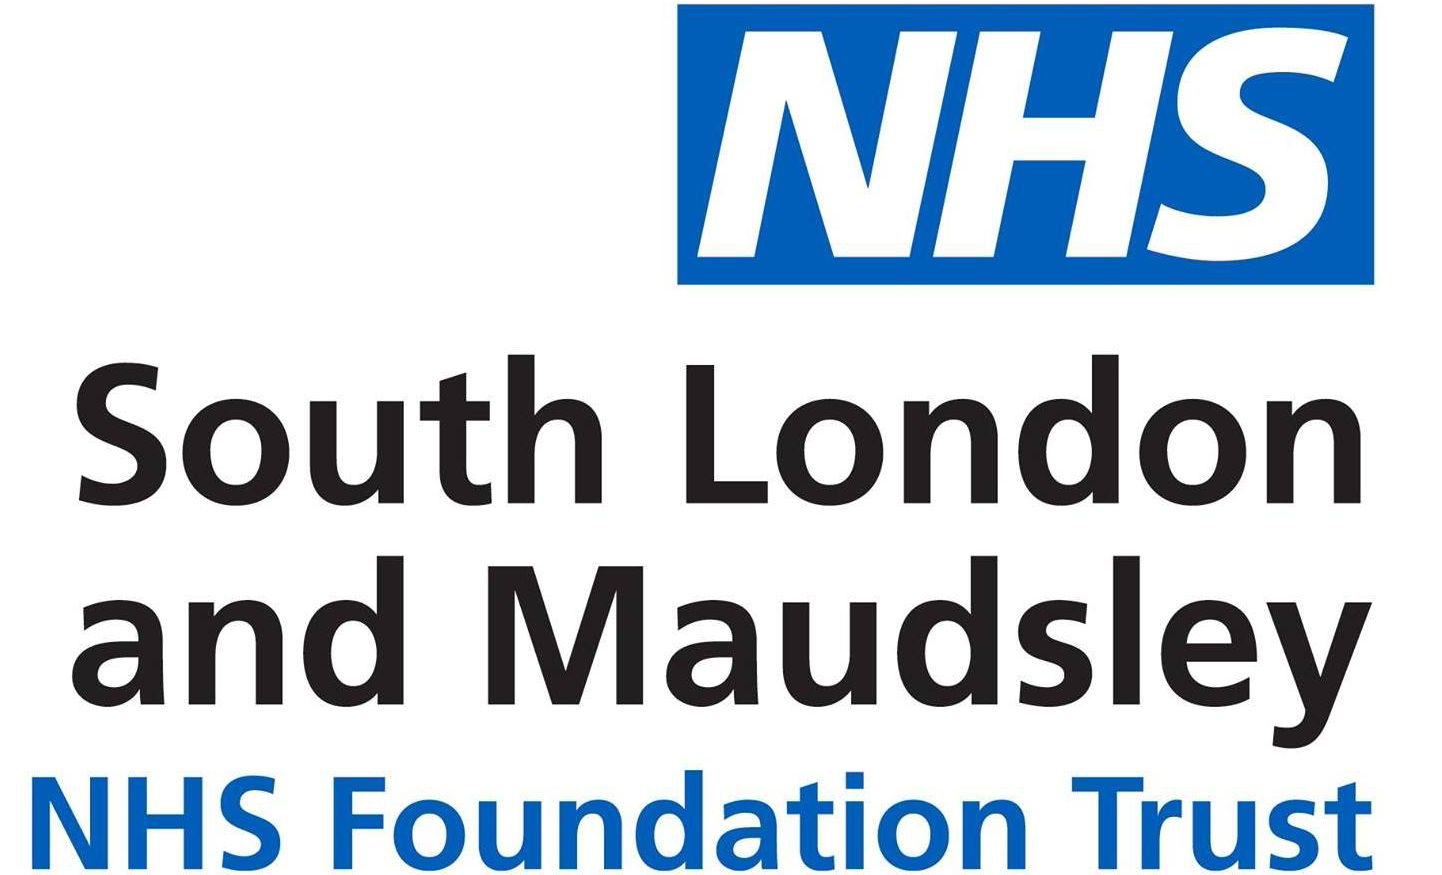 South London and Maudsley - NHS Foundation Trust